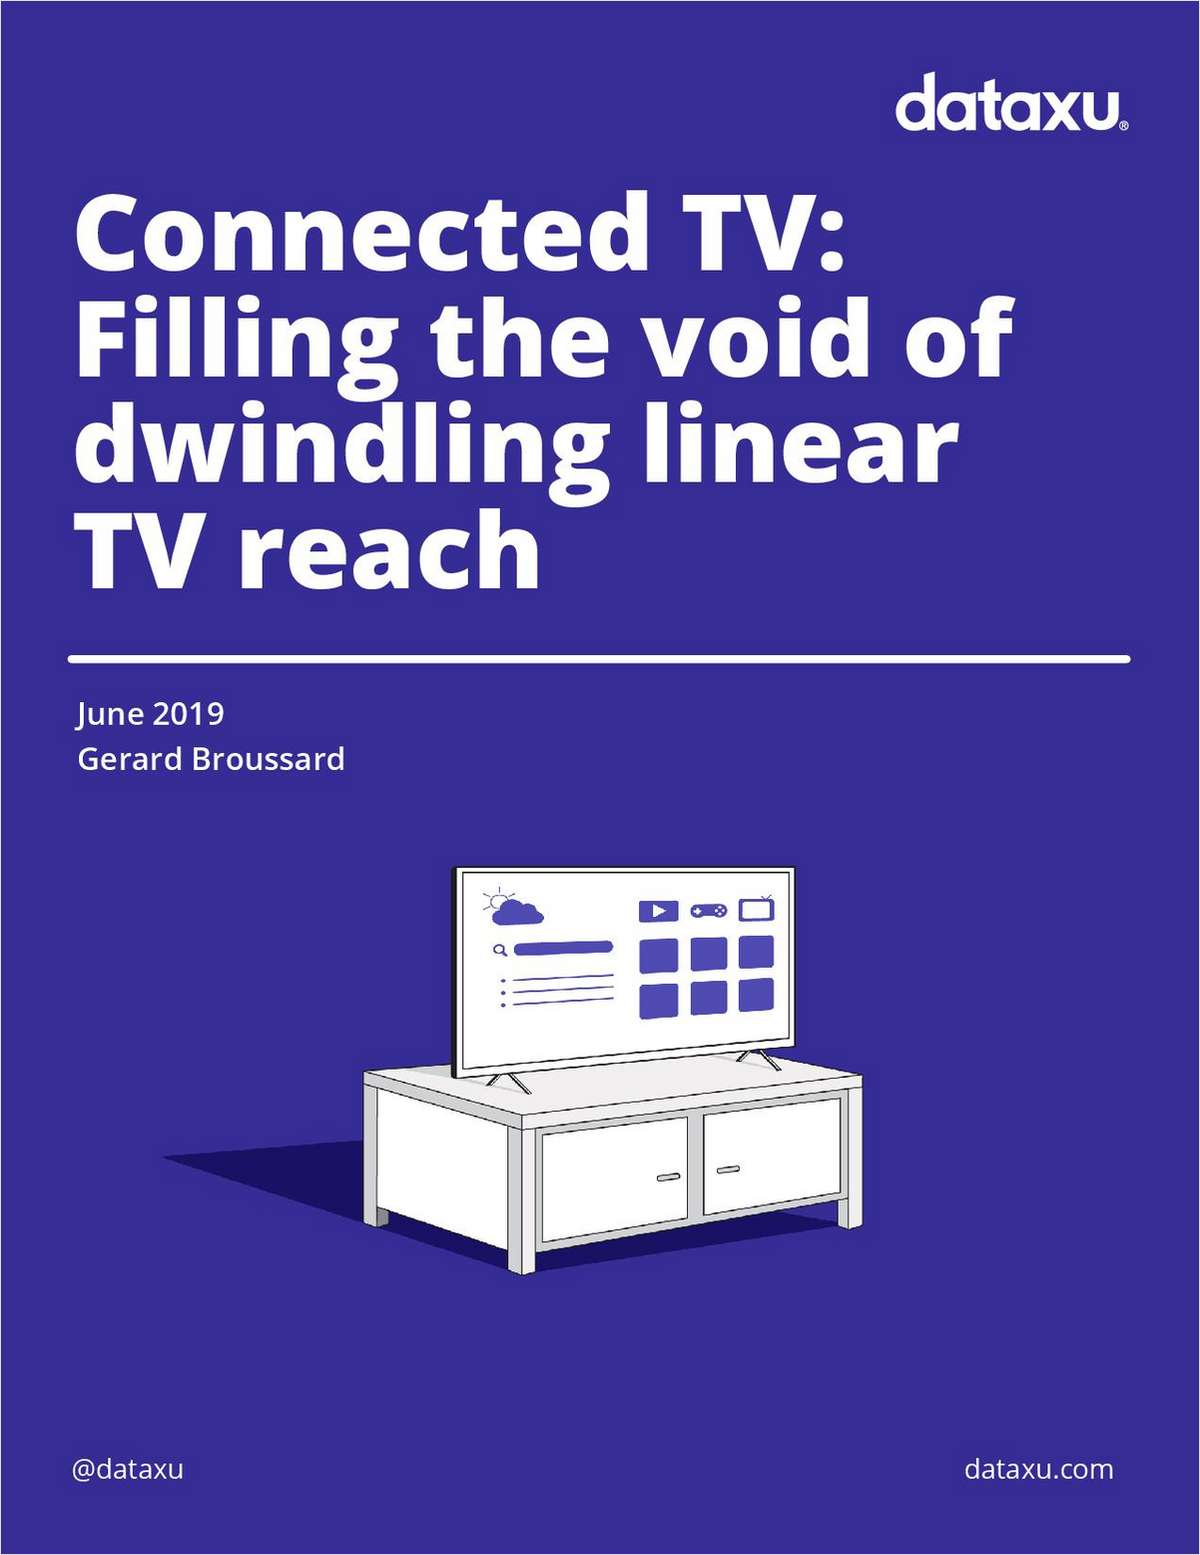 Connected TV: Filling the Void of Dwindling Linear TV Reach